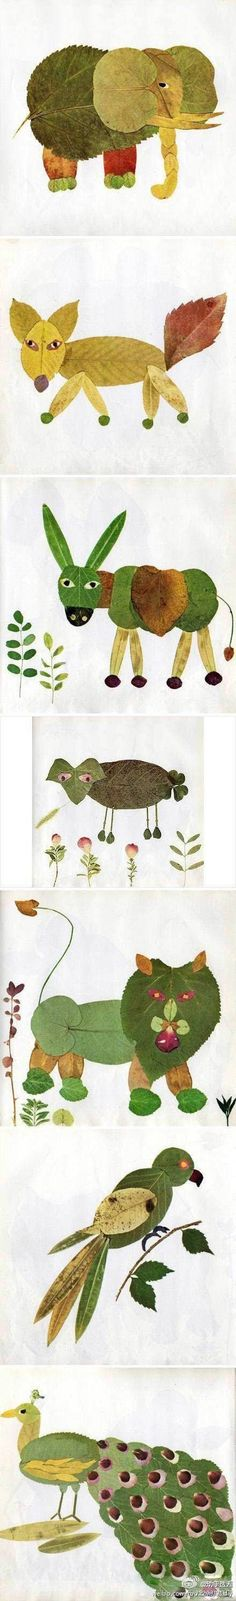 leaf animals: